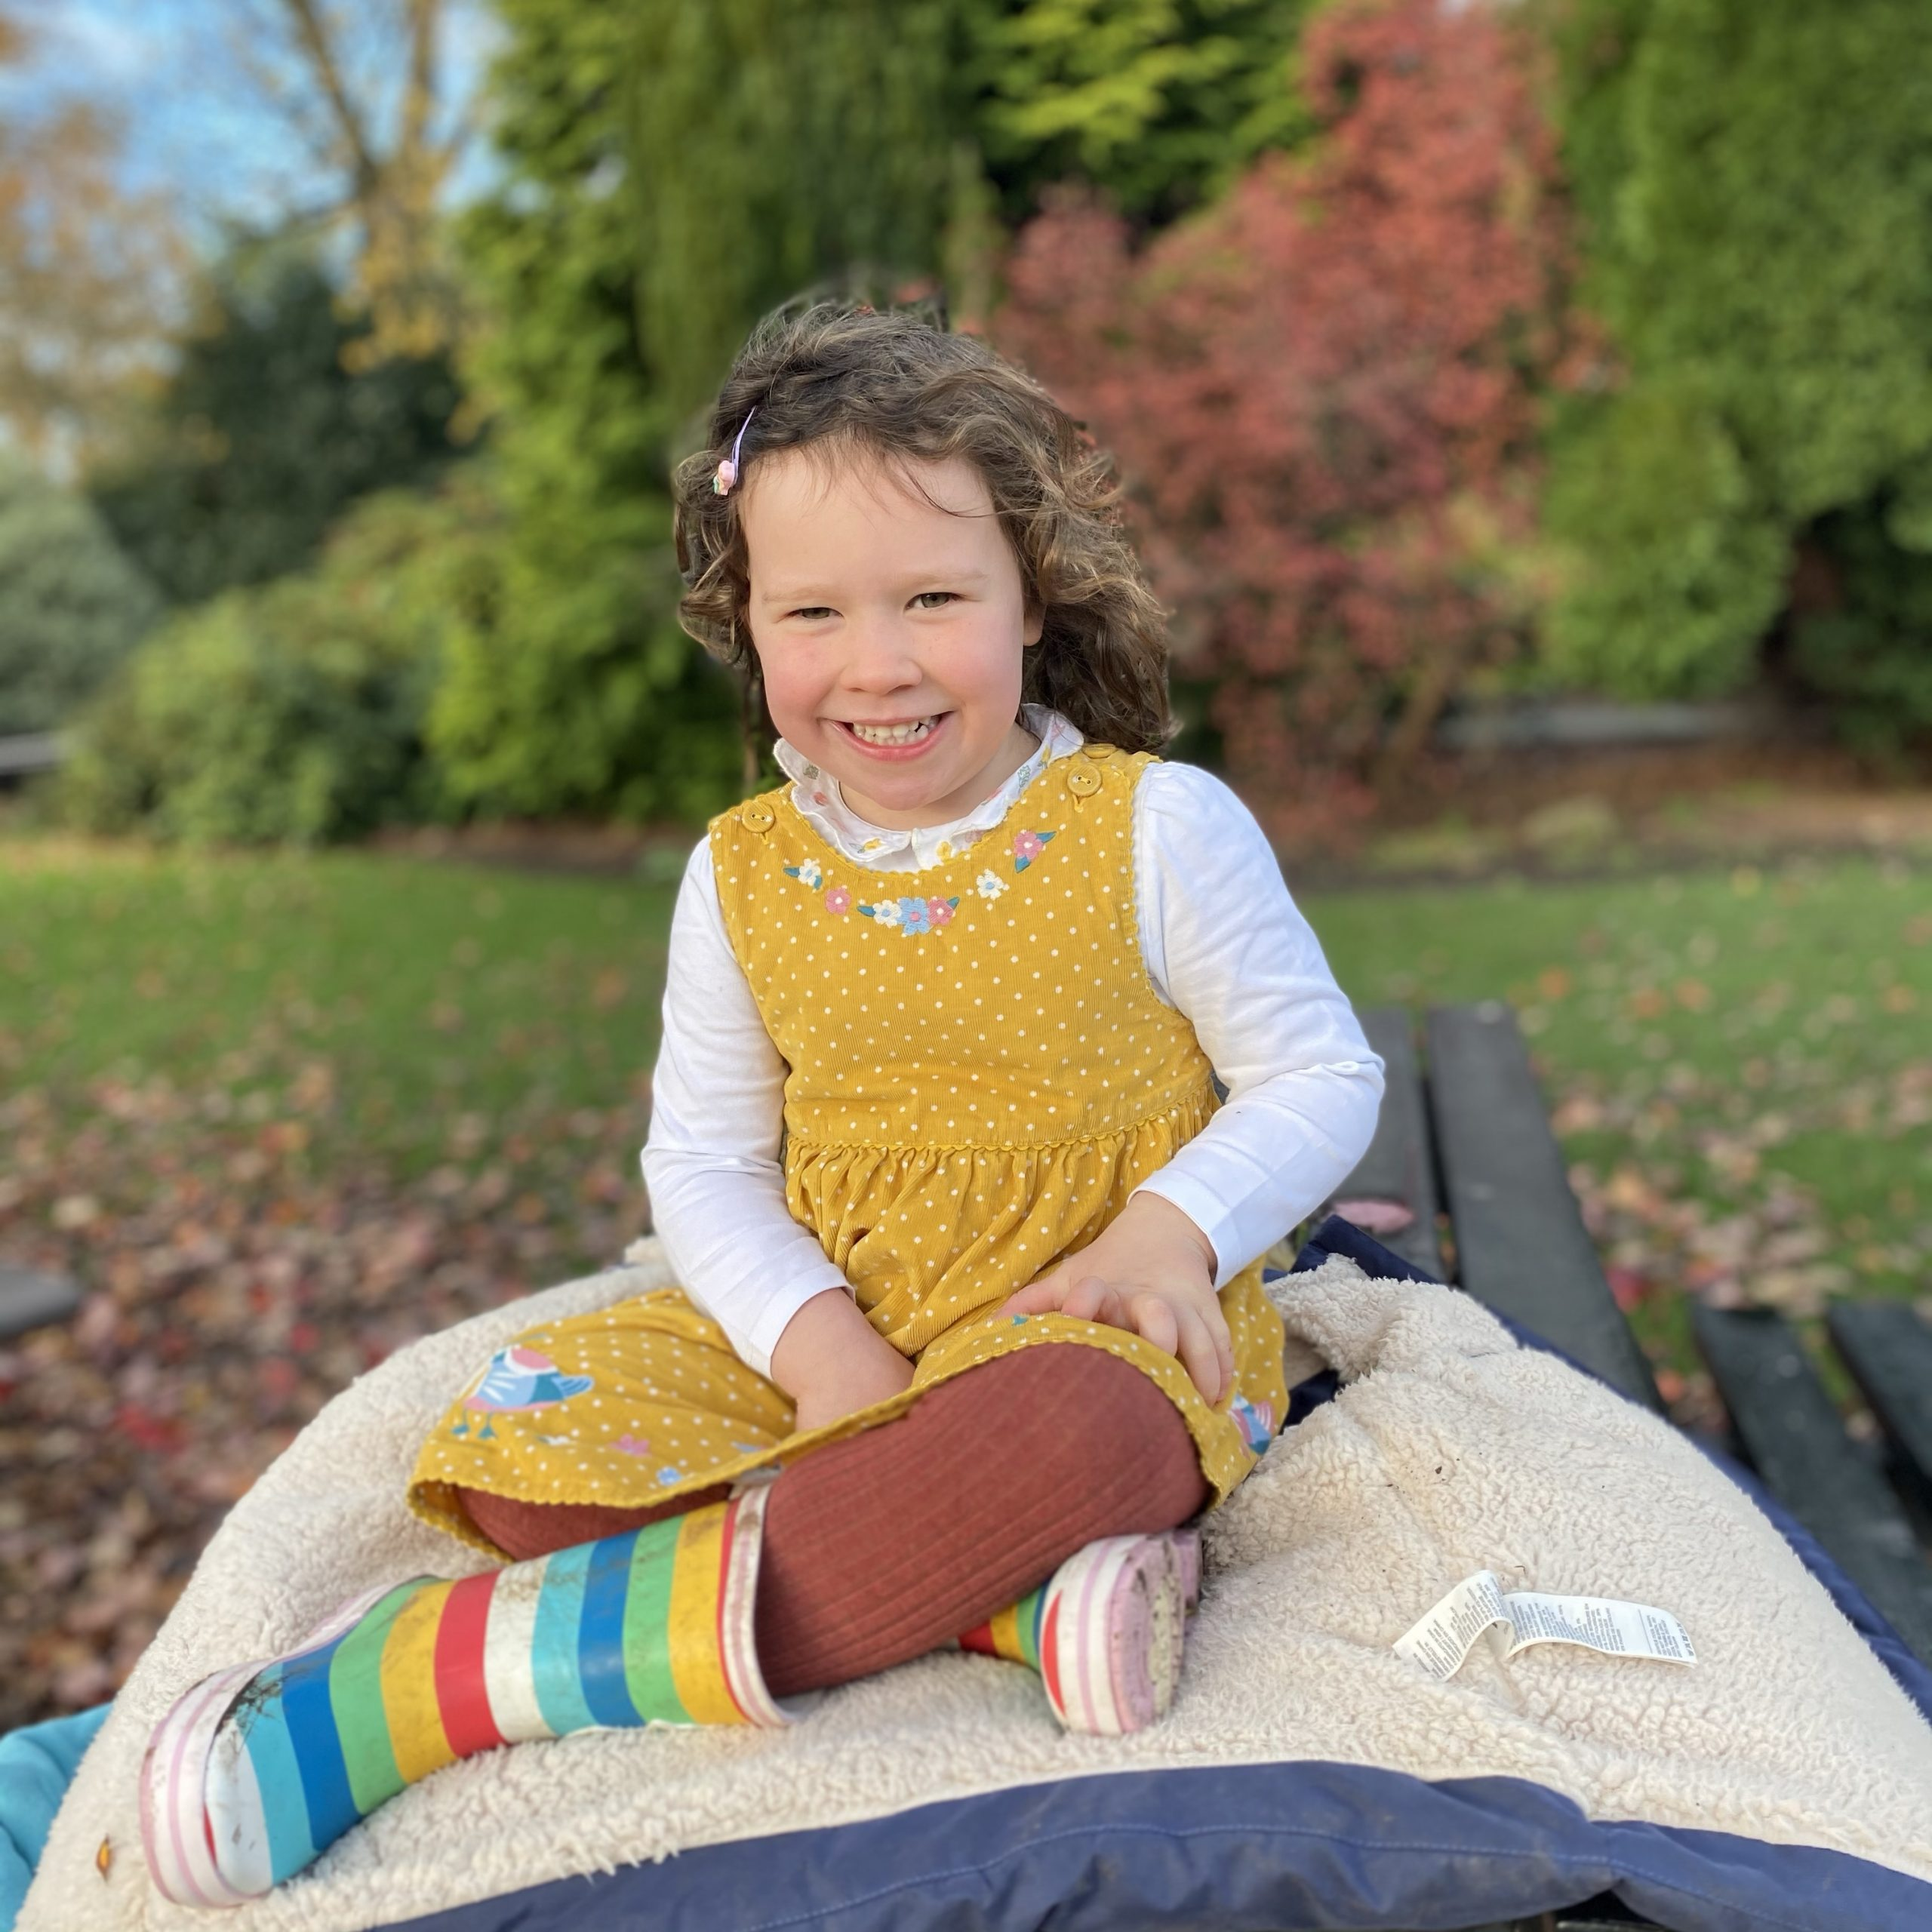 a little girl sat smiling on a picnic bench in the park